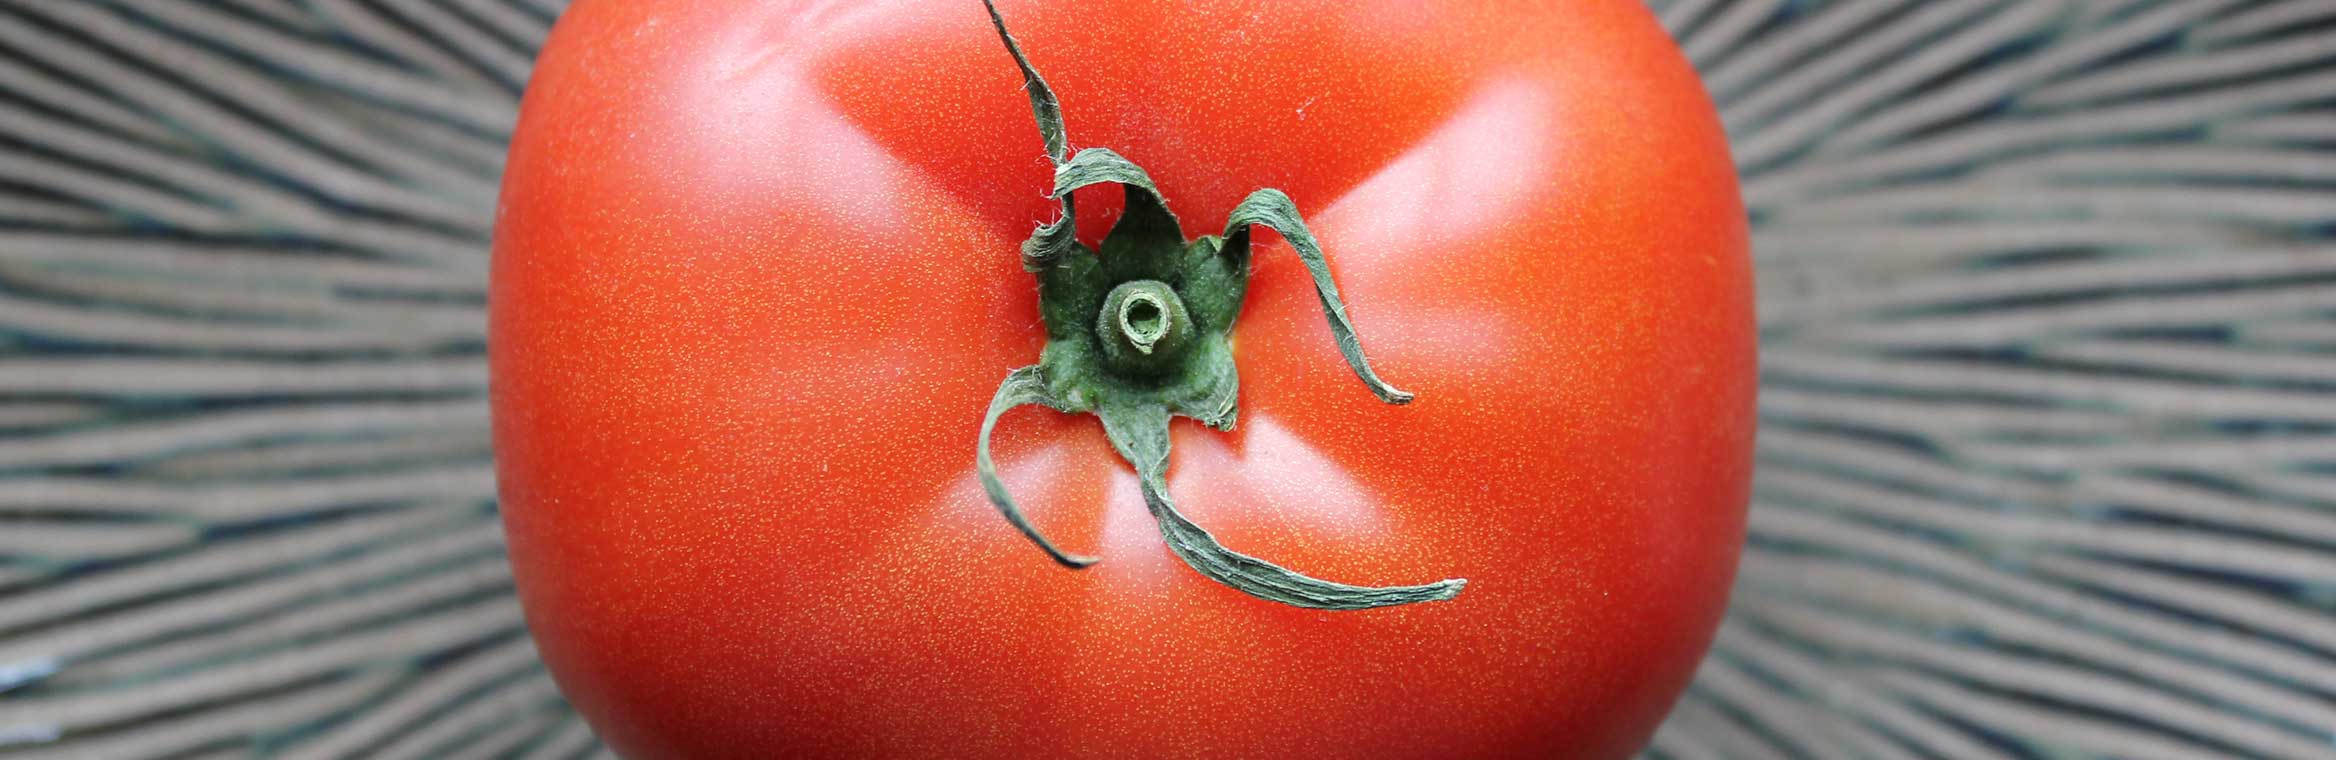 close up of a tomato